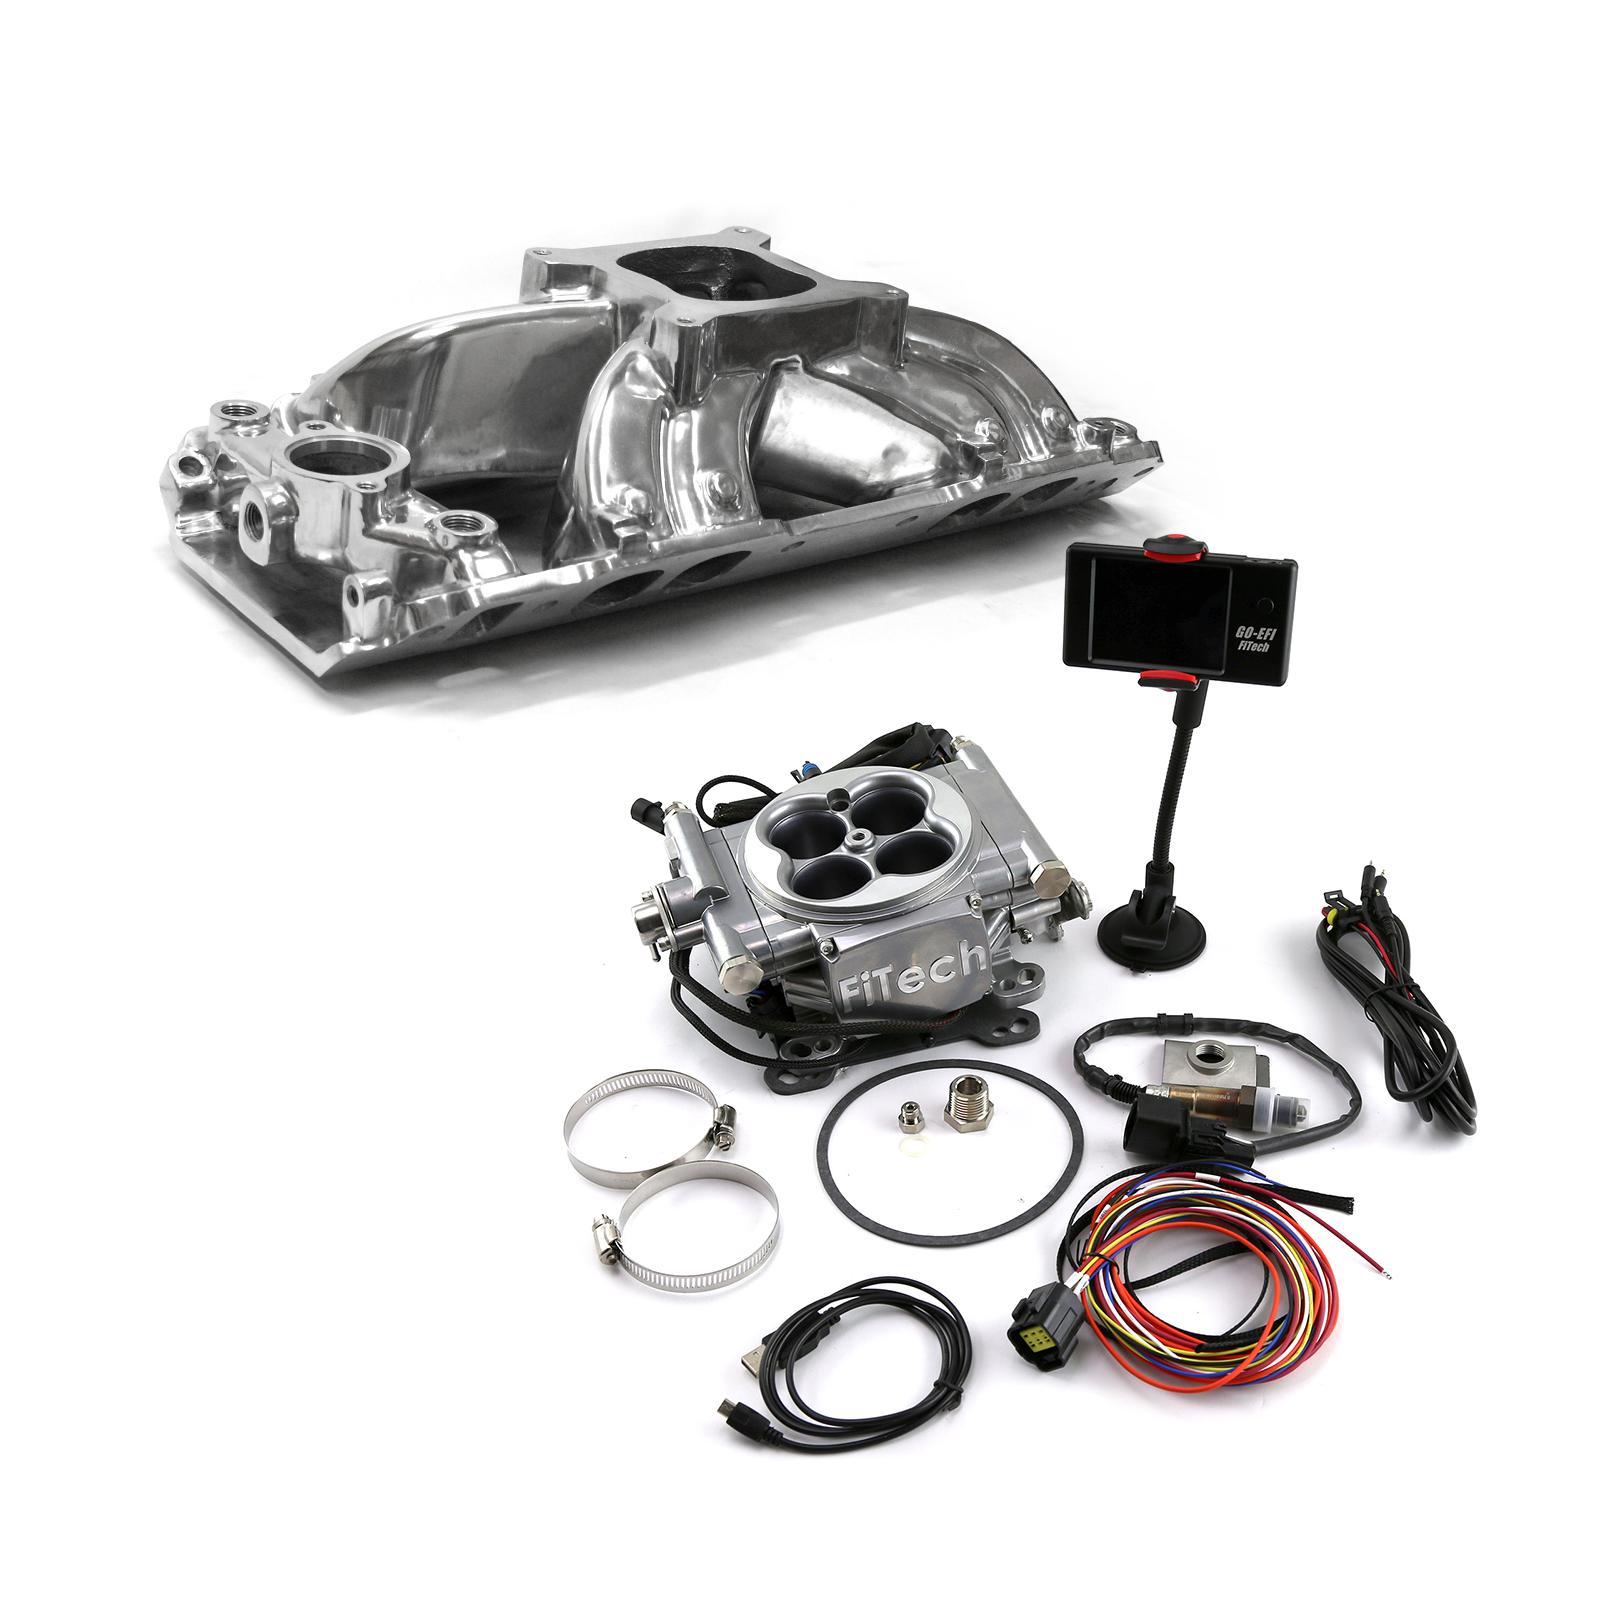 Chevy BBC 454 Shootout Oval Port Manifold & FiTech Go EFI 30001 Fuel Injection